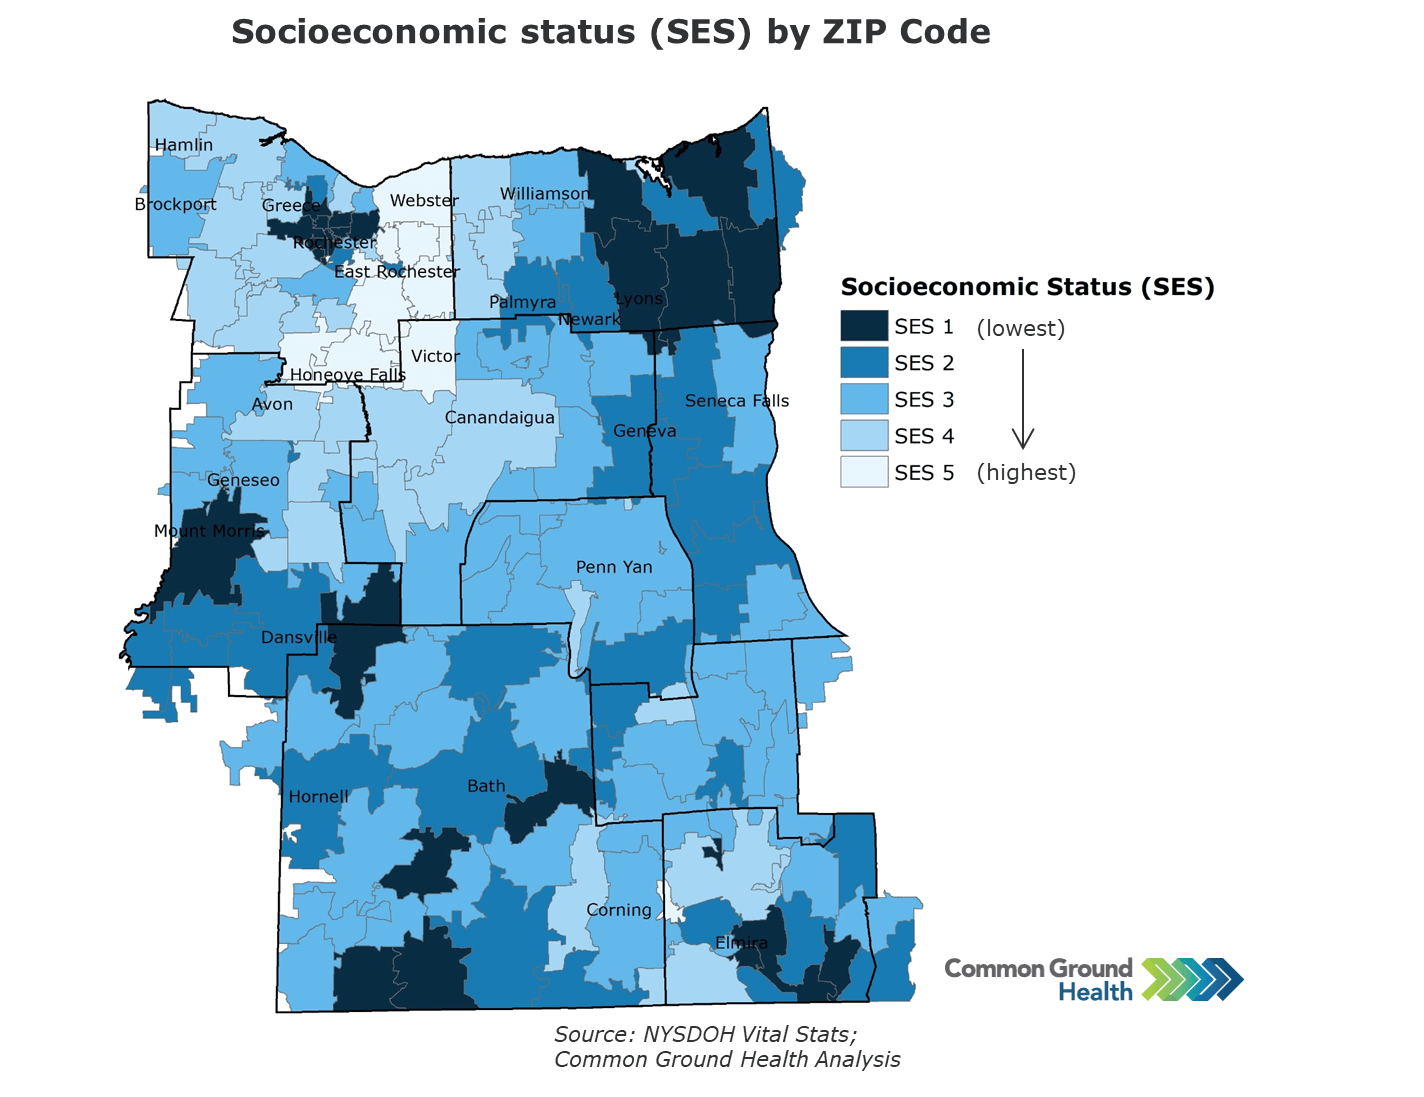 Socioeconomic Status (SES) by Zip Code